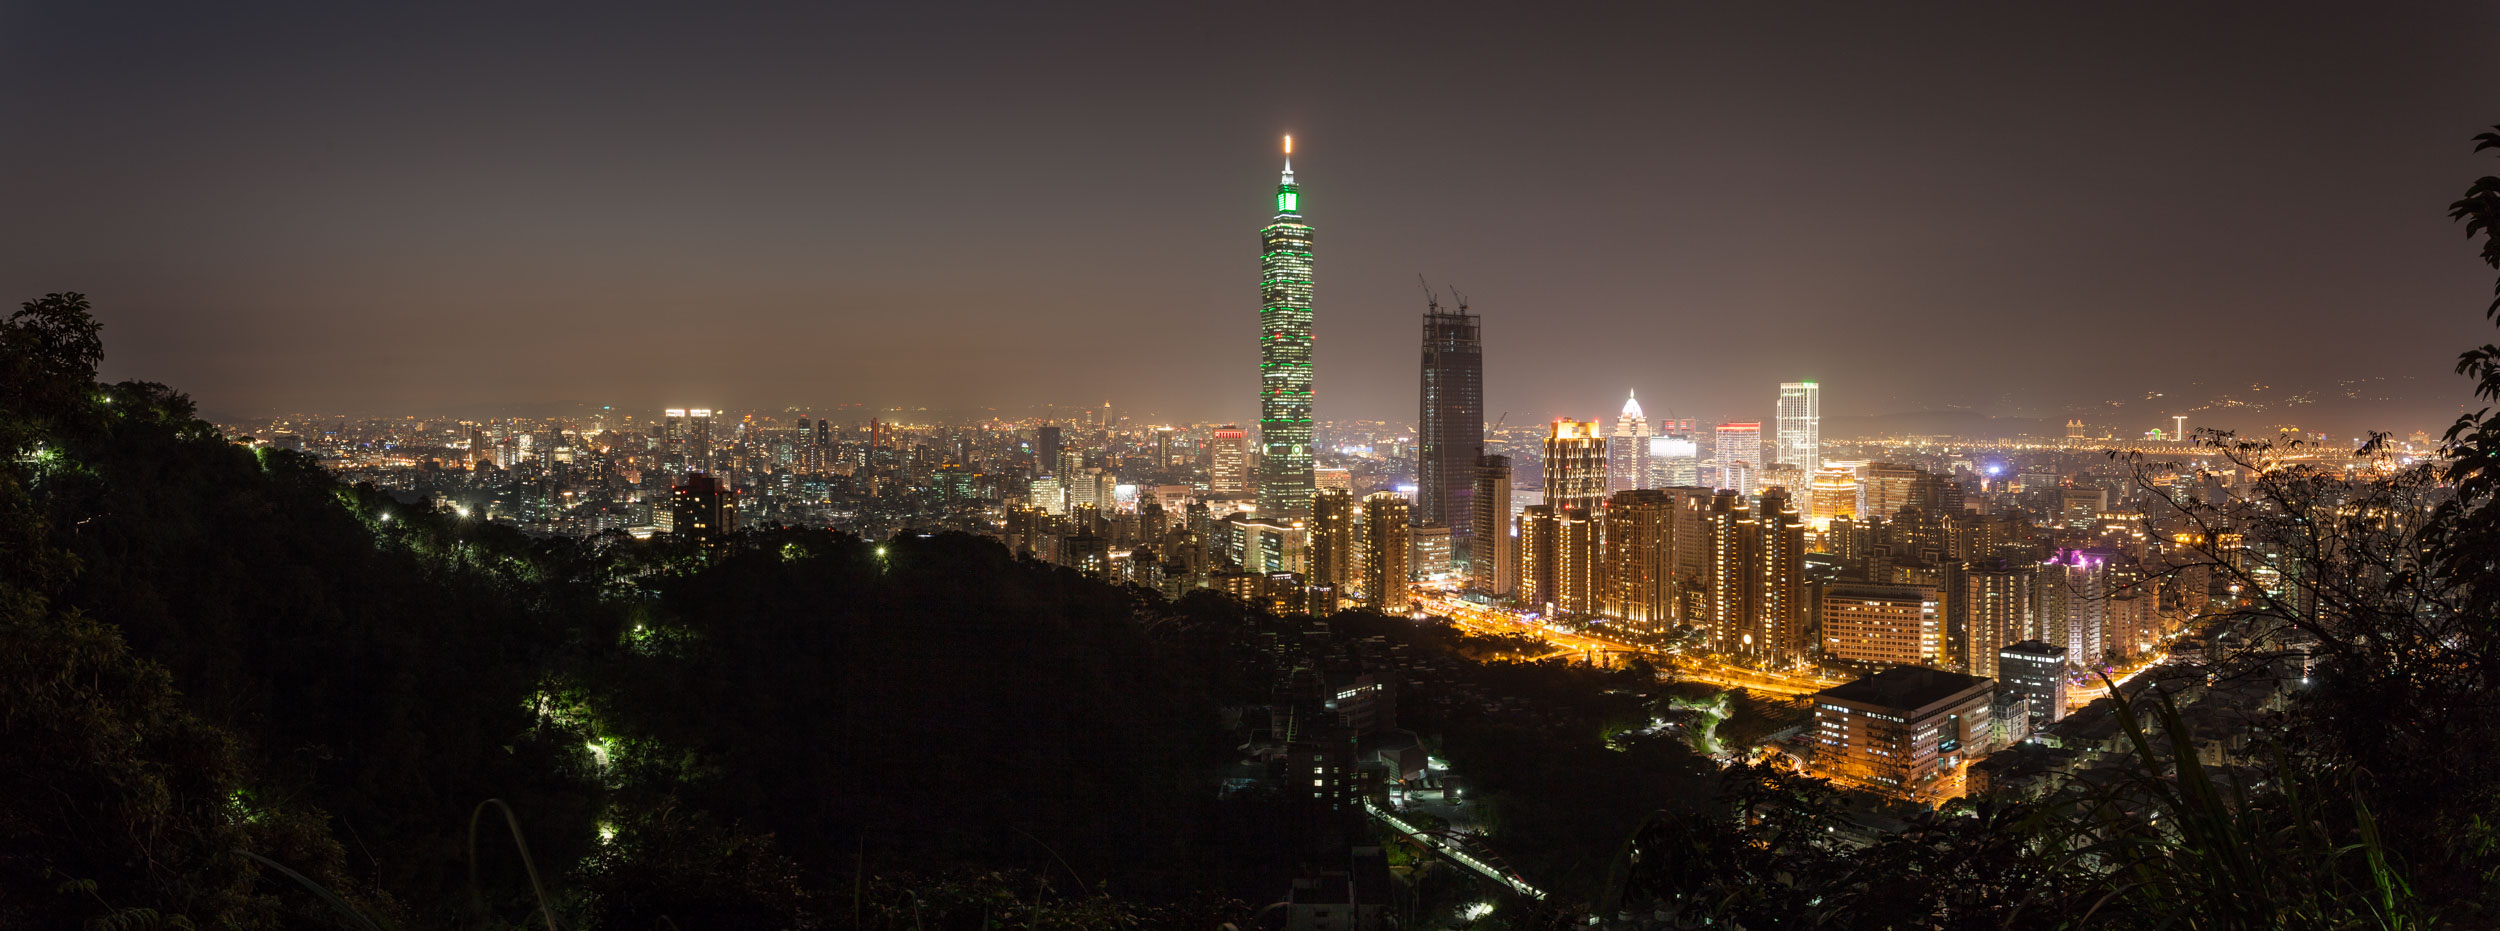 Taipei in it's night time glory.... Eat your hat Blackpool Illuminations!